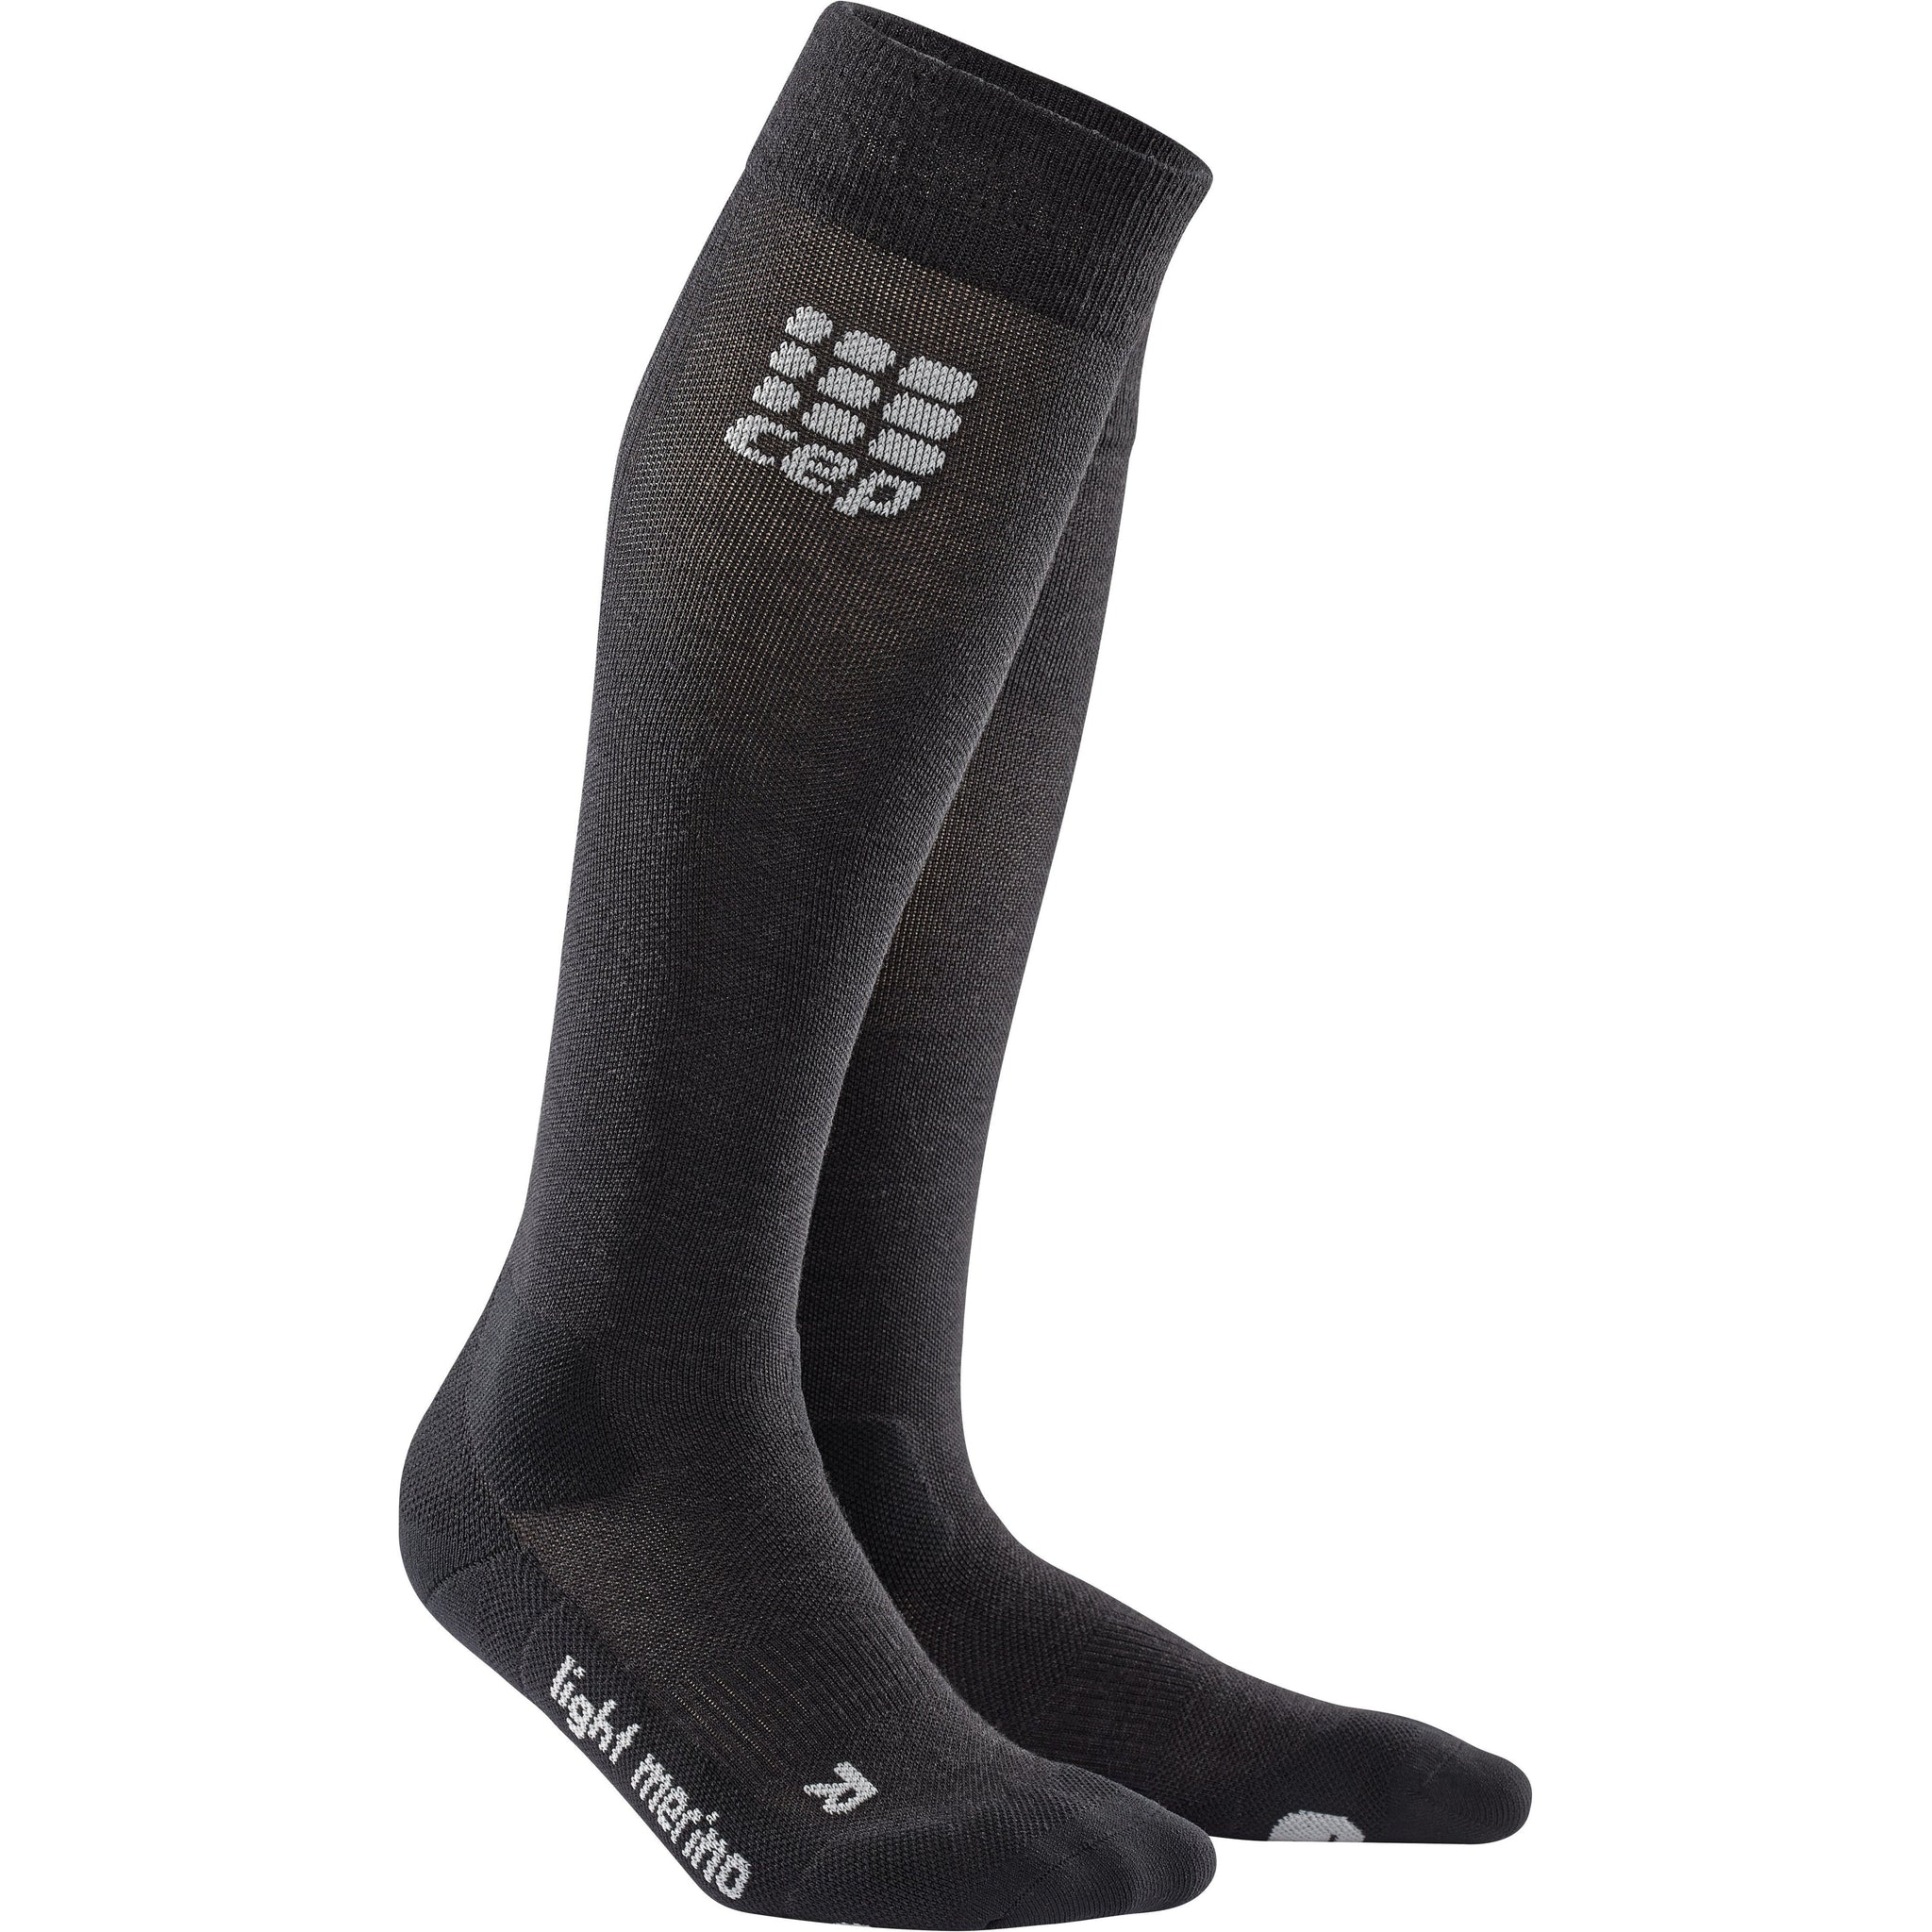 Women's Outdoor Light Merino Socks